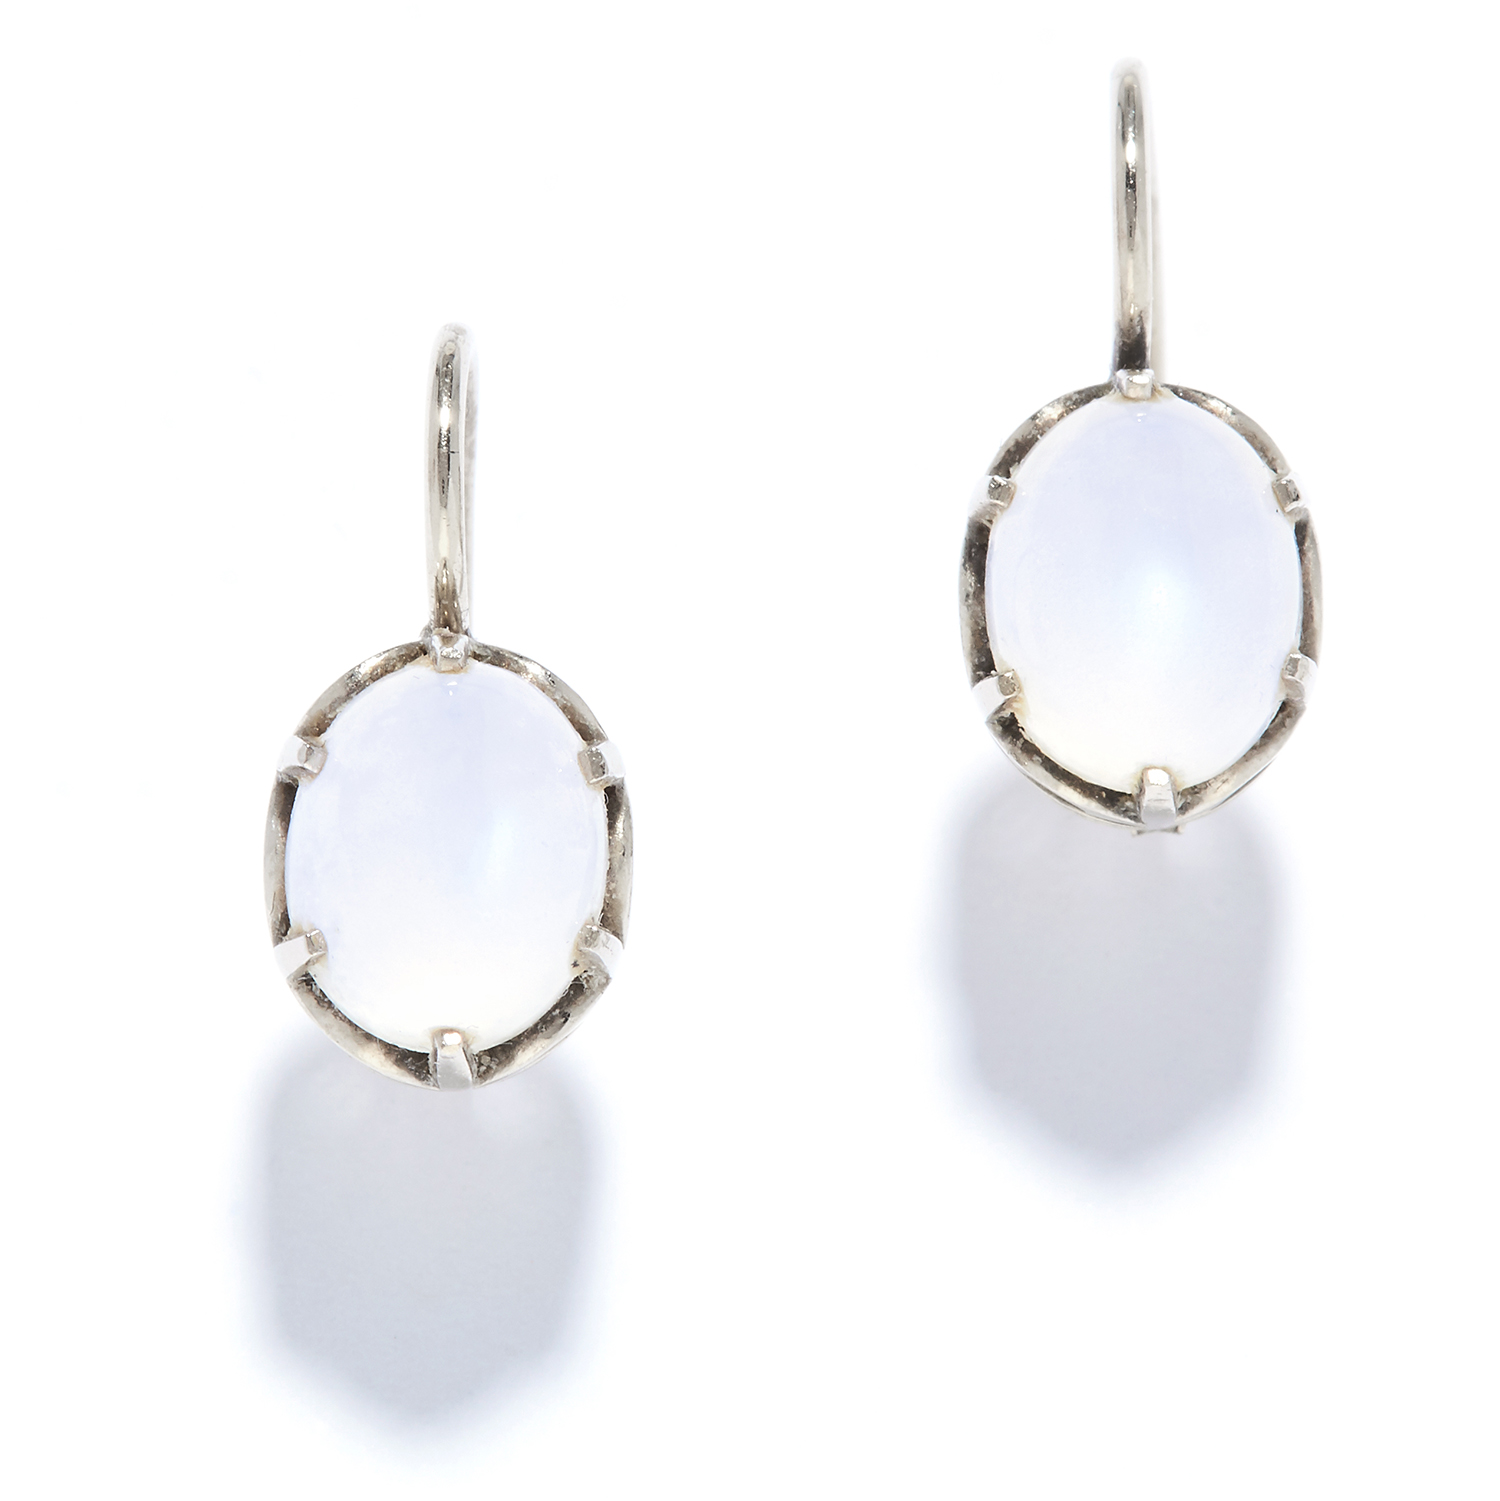 A PAIR OF MOONSTONE EARRINGS in 14ct white gold, each set with a cabochon moonstone, stamped 14K,